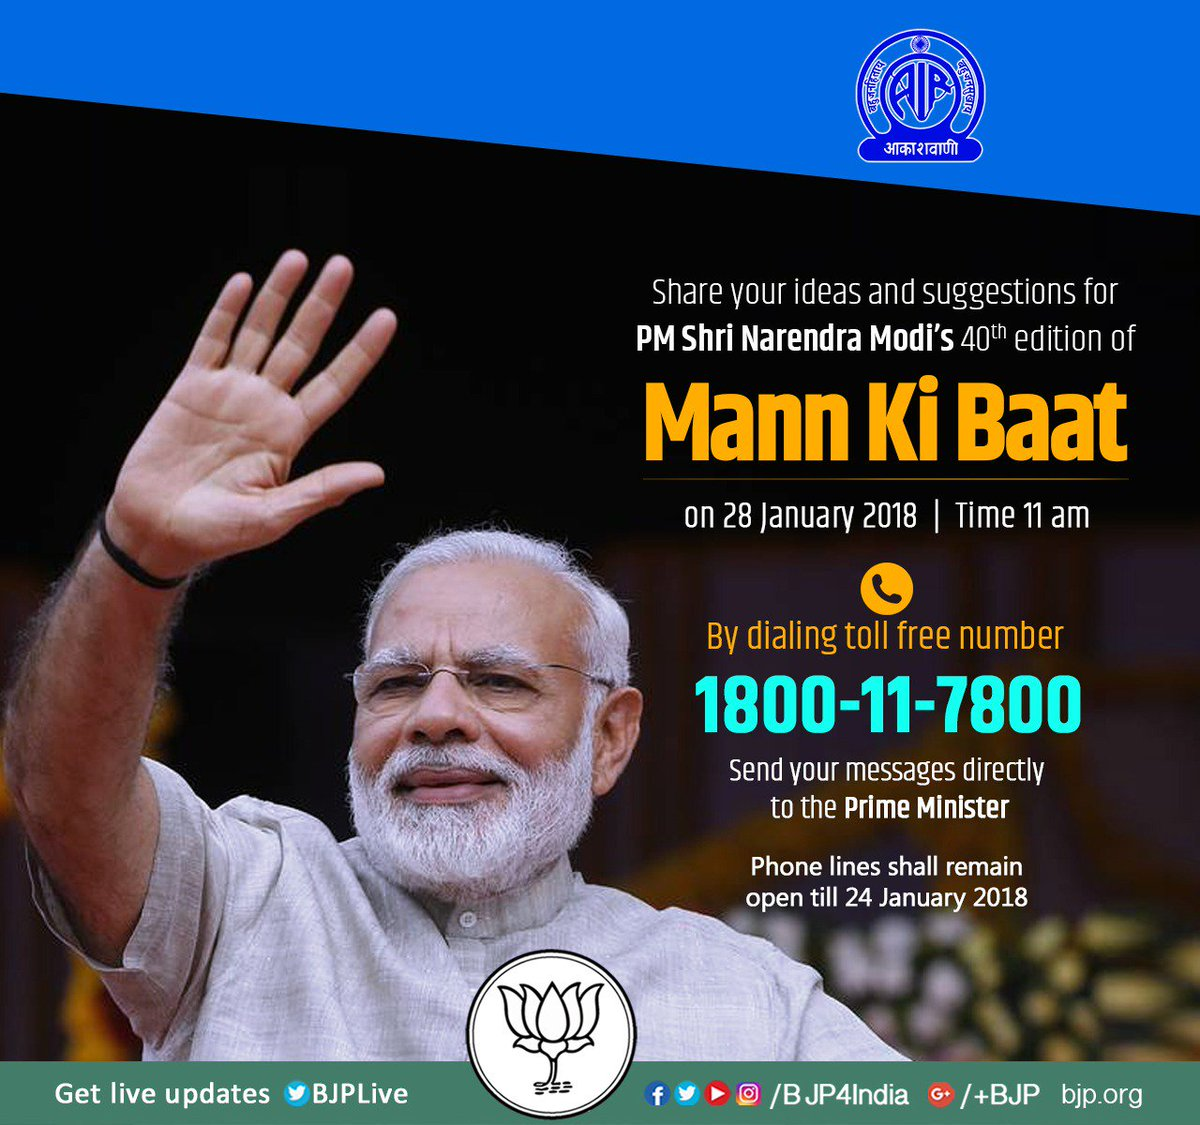 Dial 1800117800 to share your ideas and suggestions for 40th edition of PM Shri @narendramodi's #MannKiBaat on 28 January 2018. You can also share your inputs at https://t.co/f0bVMXRfDW.